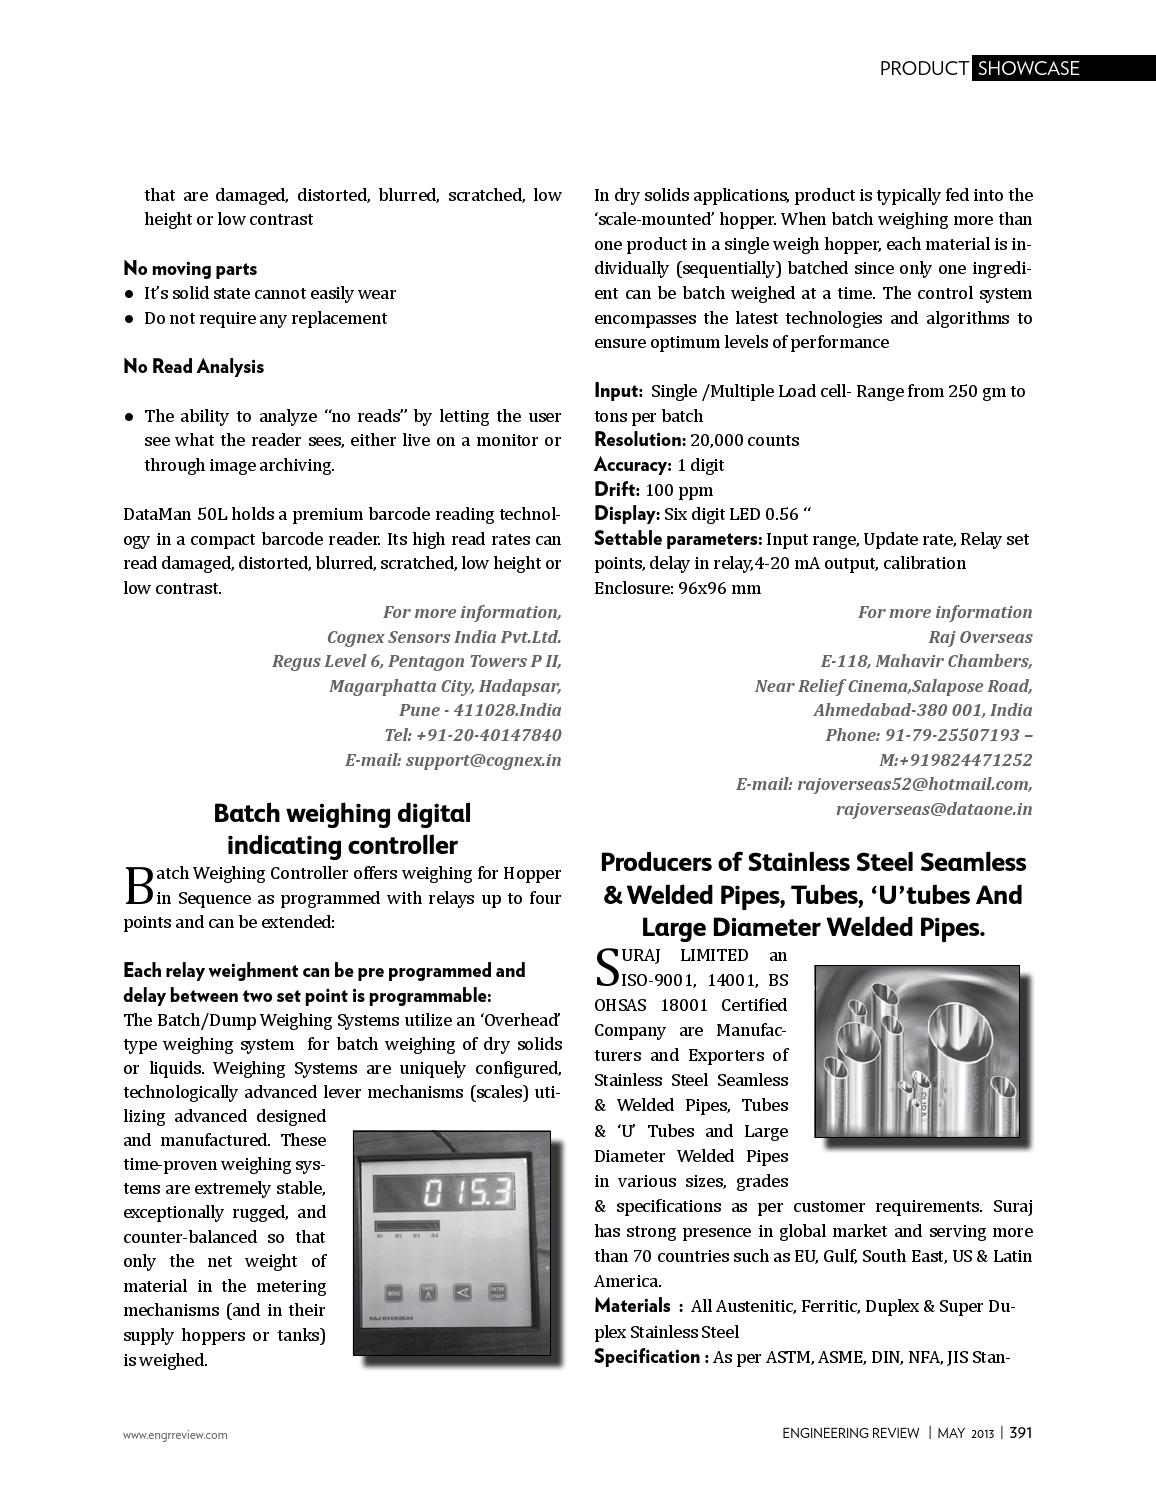 Engineering Review May 2013 by Divya Media Publications Pvt